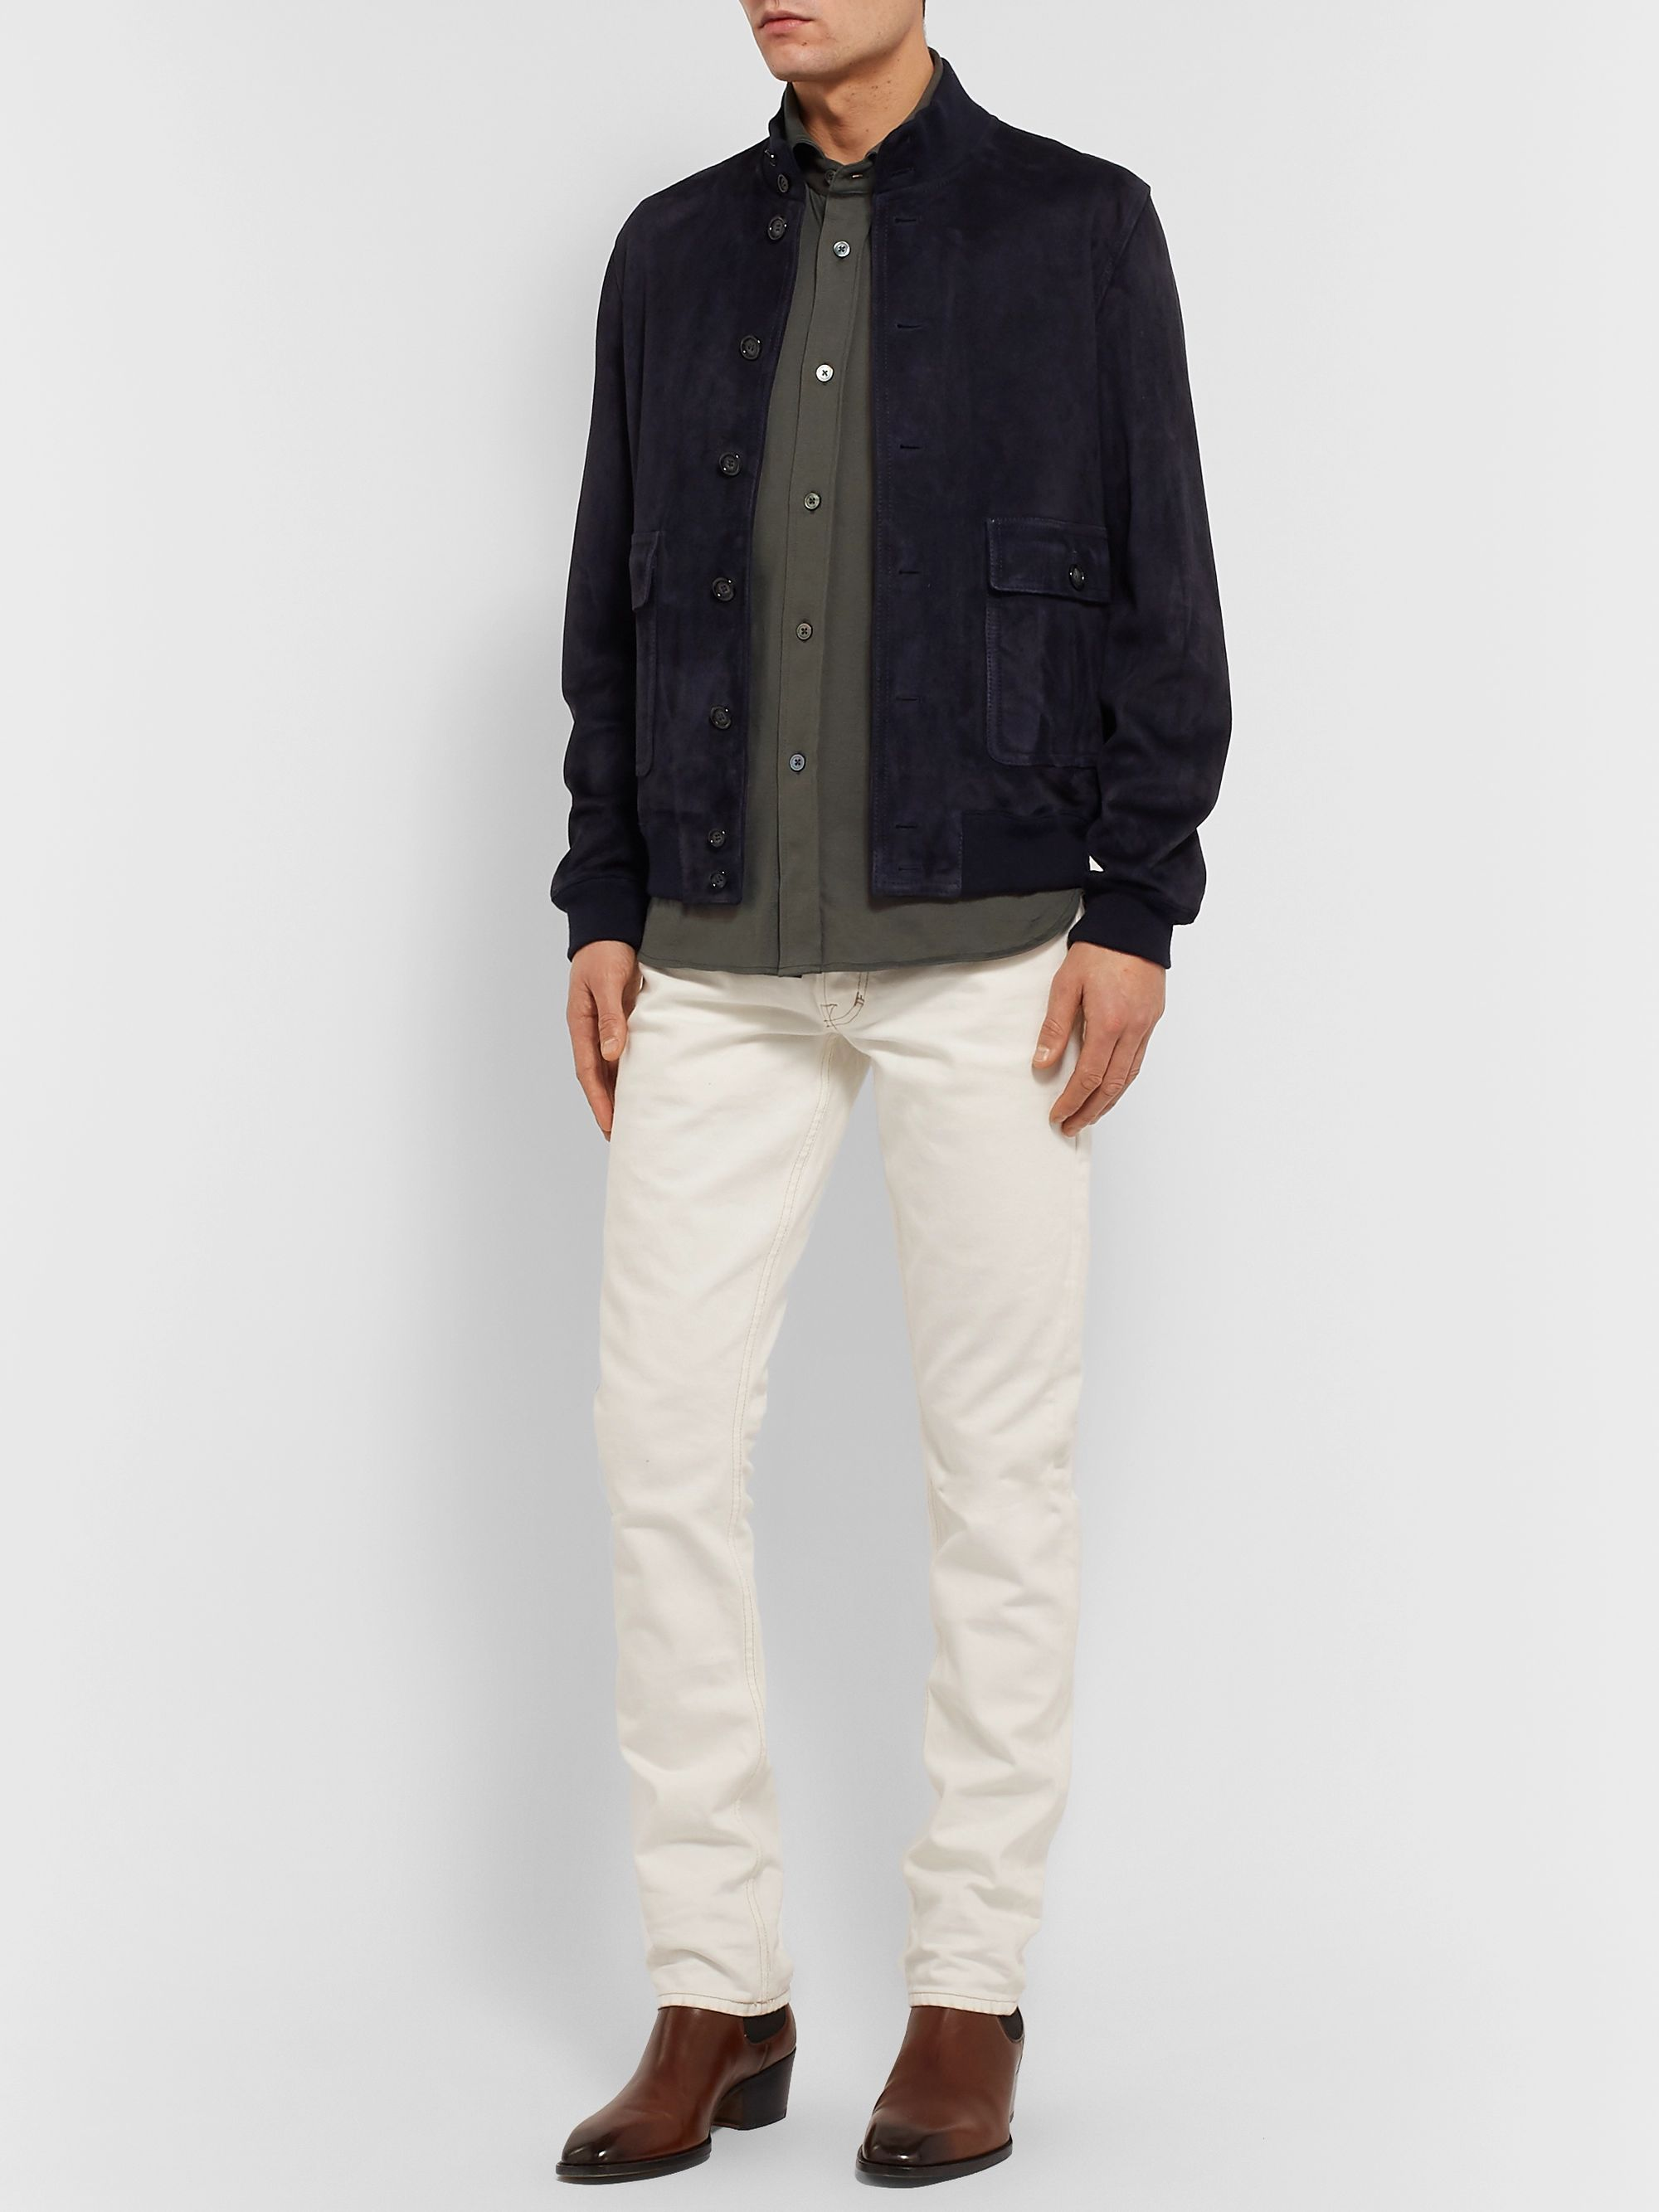 TOM FORD Slim-Fit Cotton-Jersey Shirt